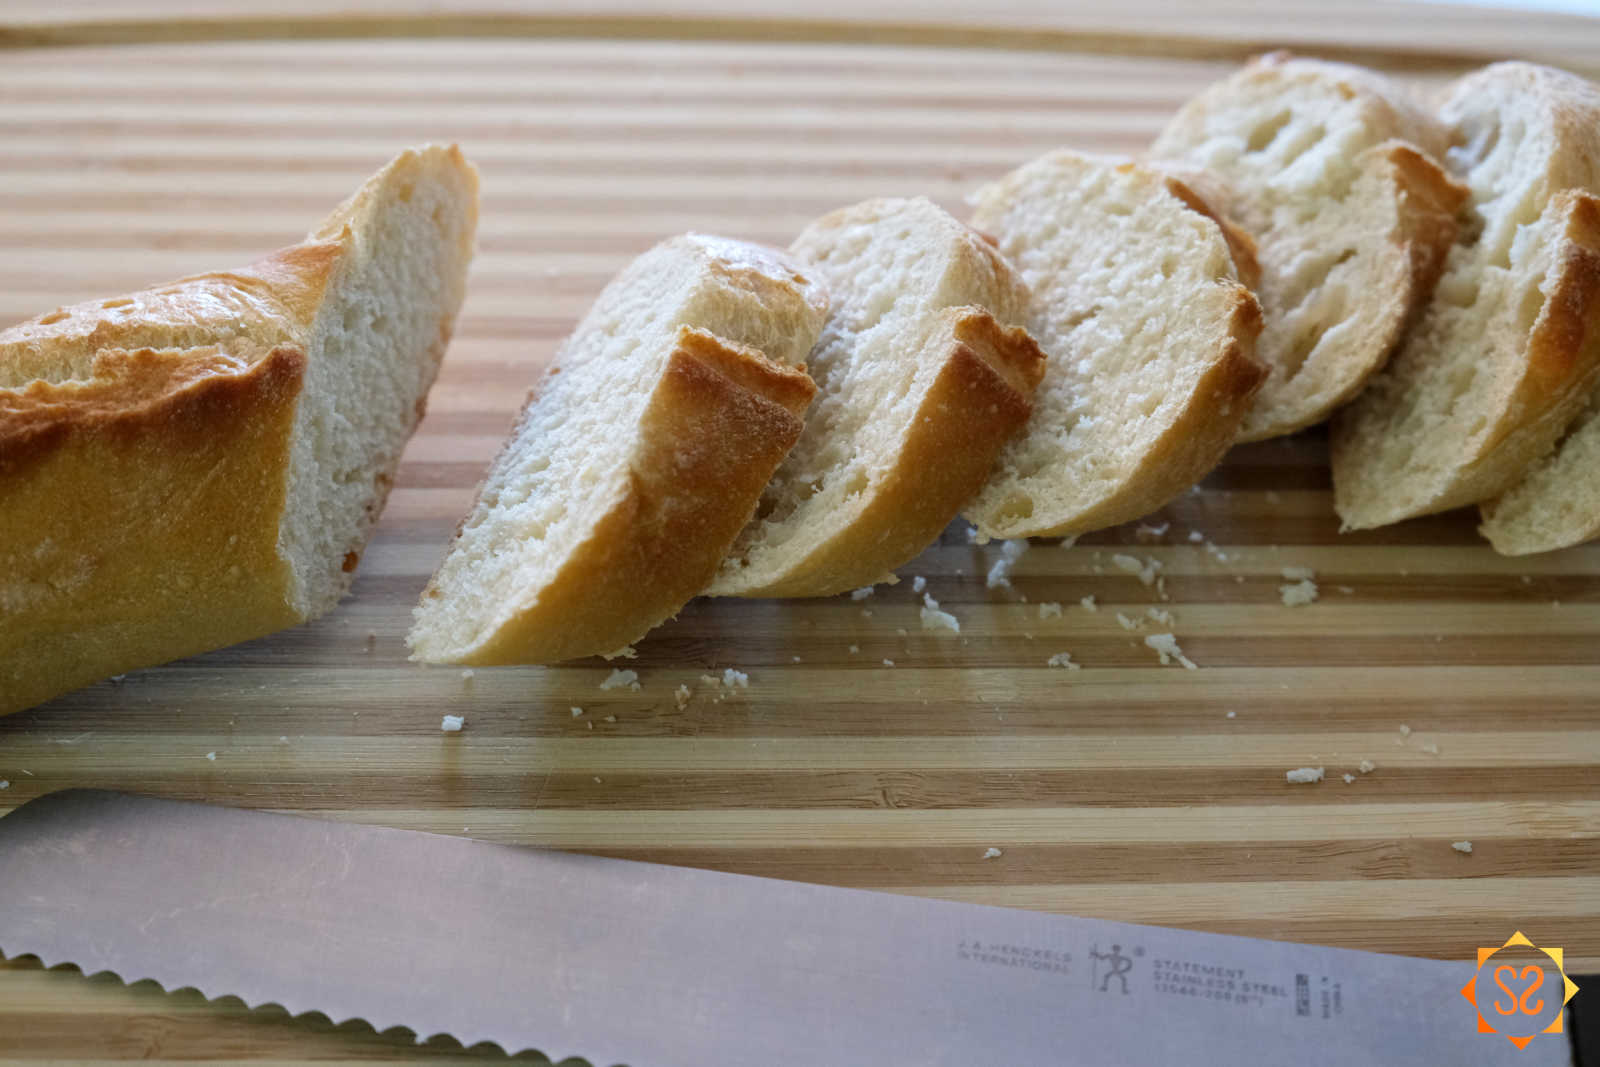 Baguette on a cutting board with several slices cut and a knife.